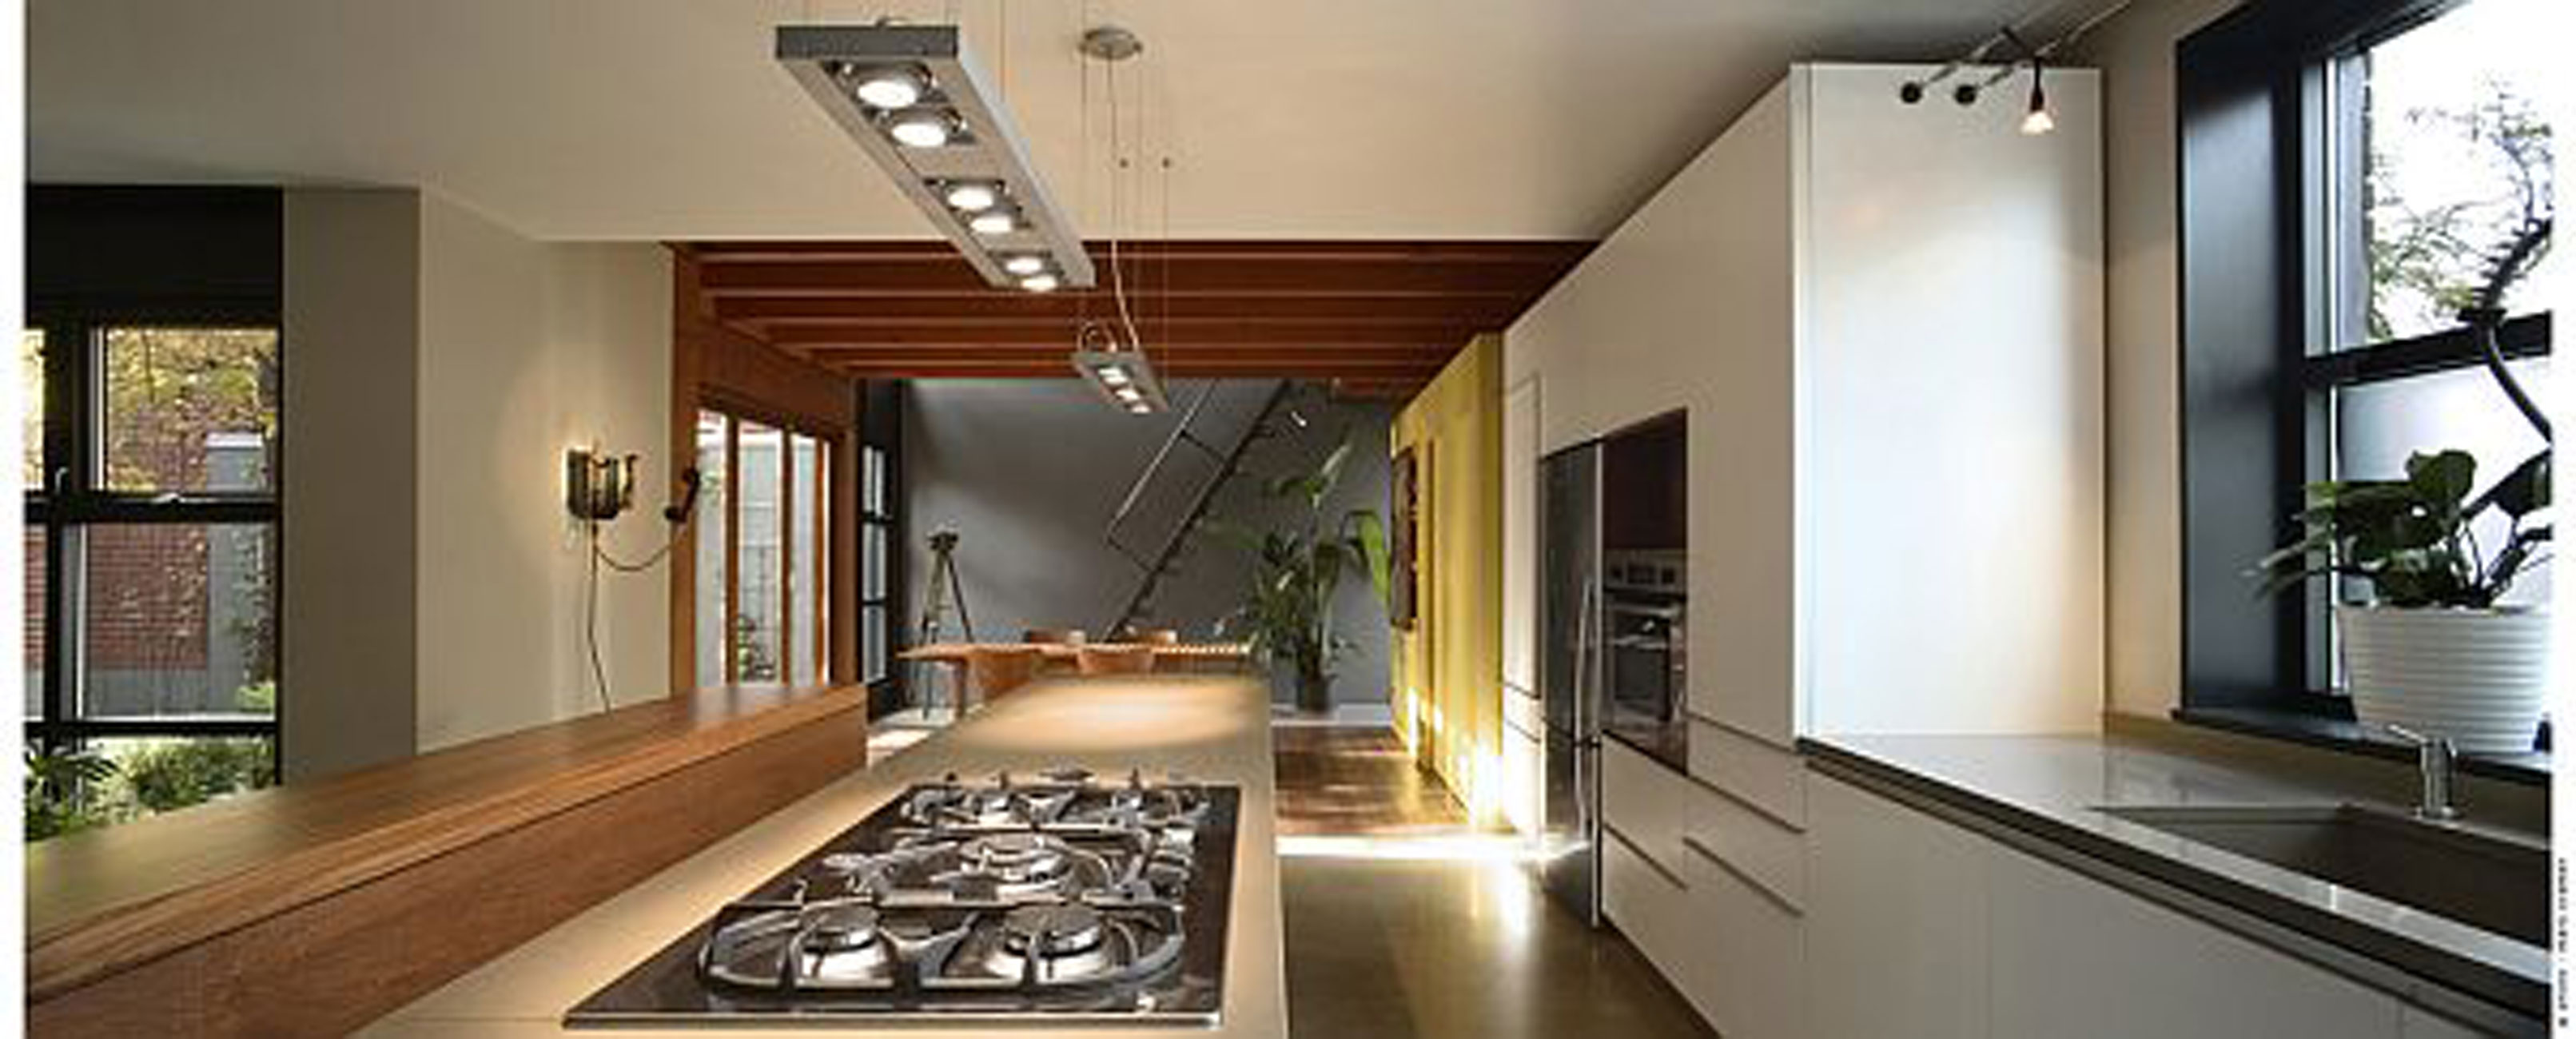 Contemporary house design redesigned industrial building by natalie